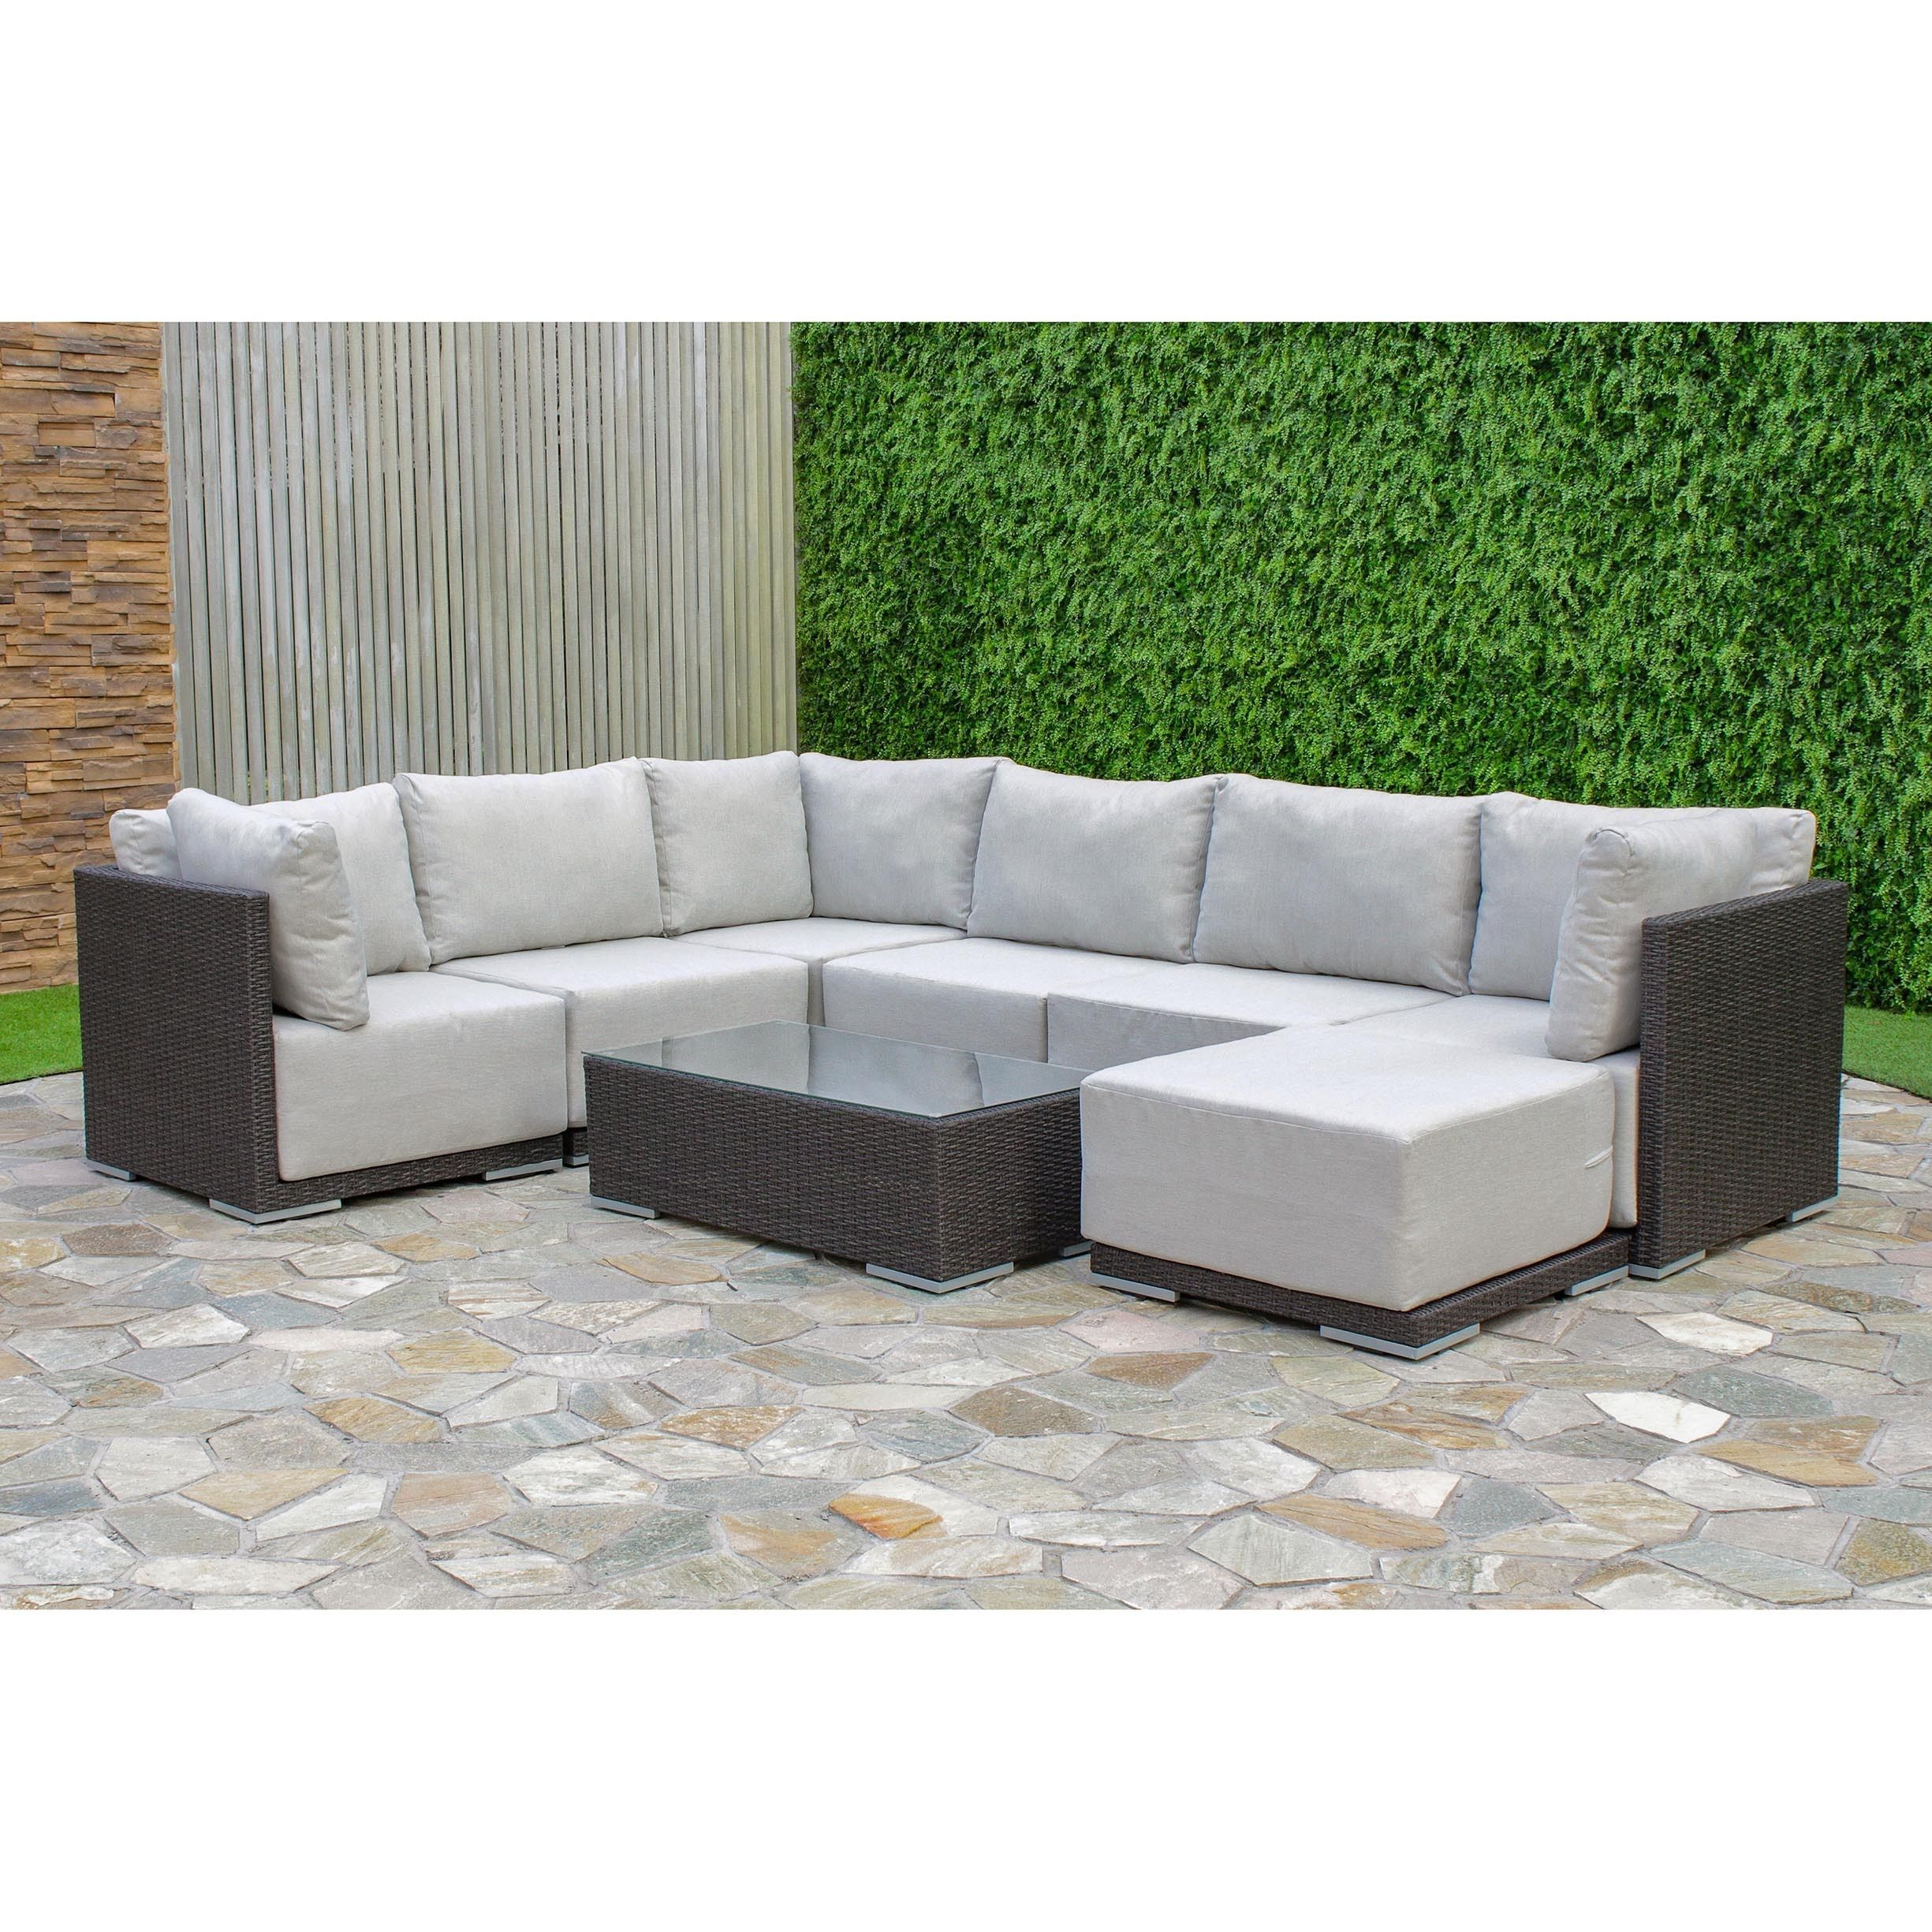 Free Delivery · Ottomans · Enhance Your Outdoor Living Space With This  Aventura Wicker Sectional Set. Crafted From Weather